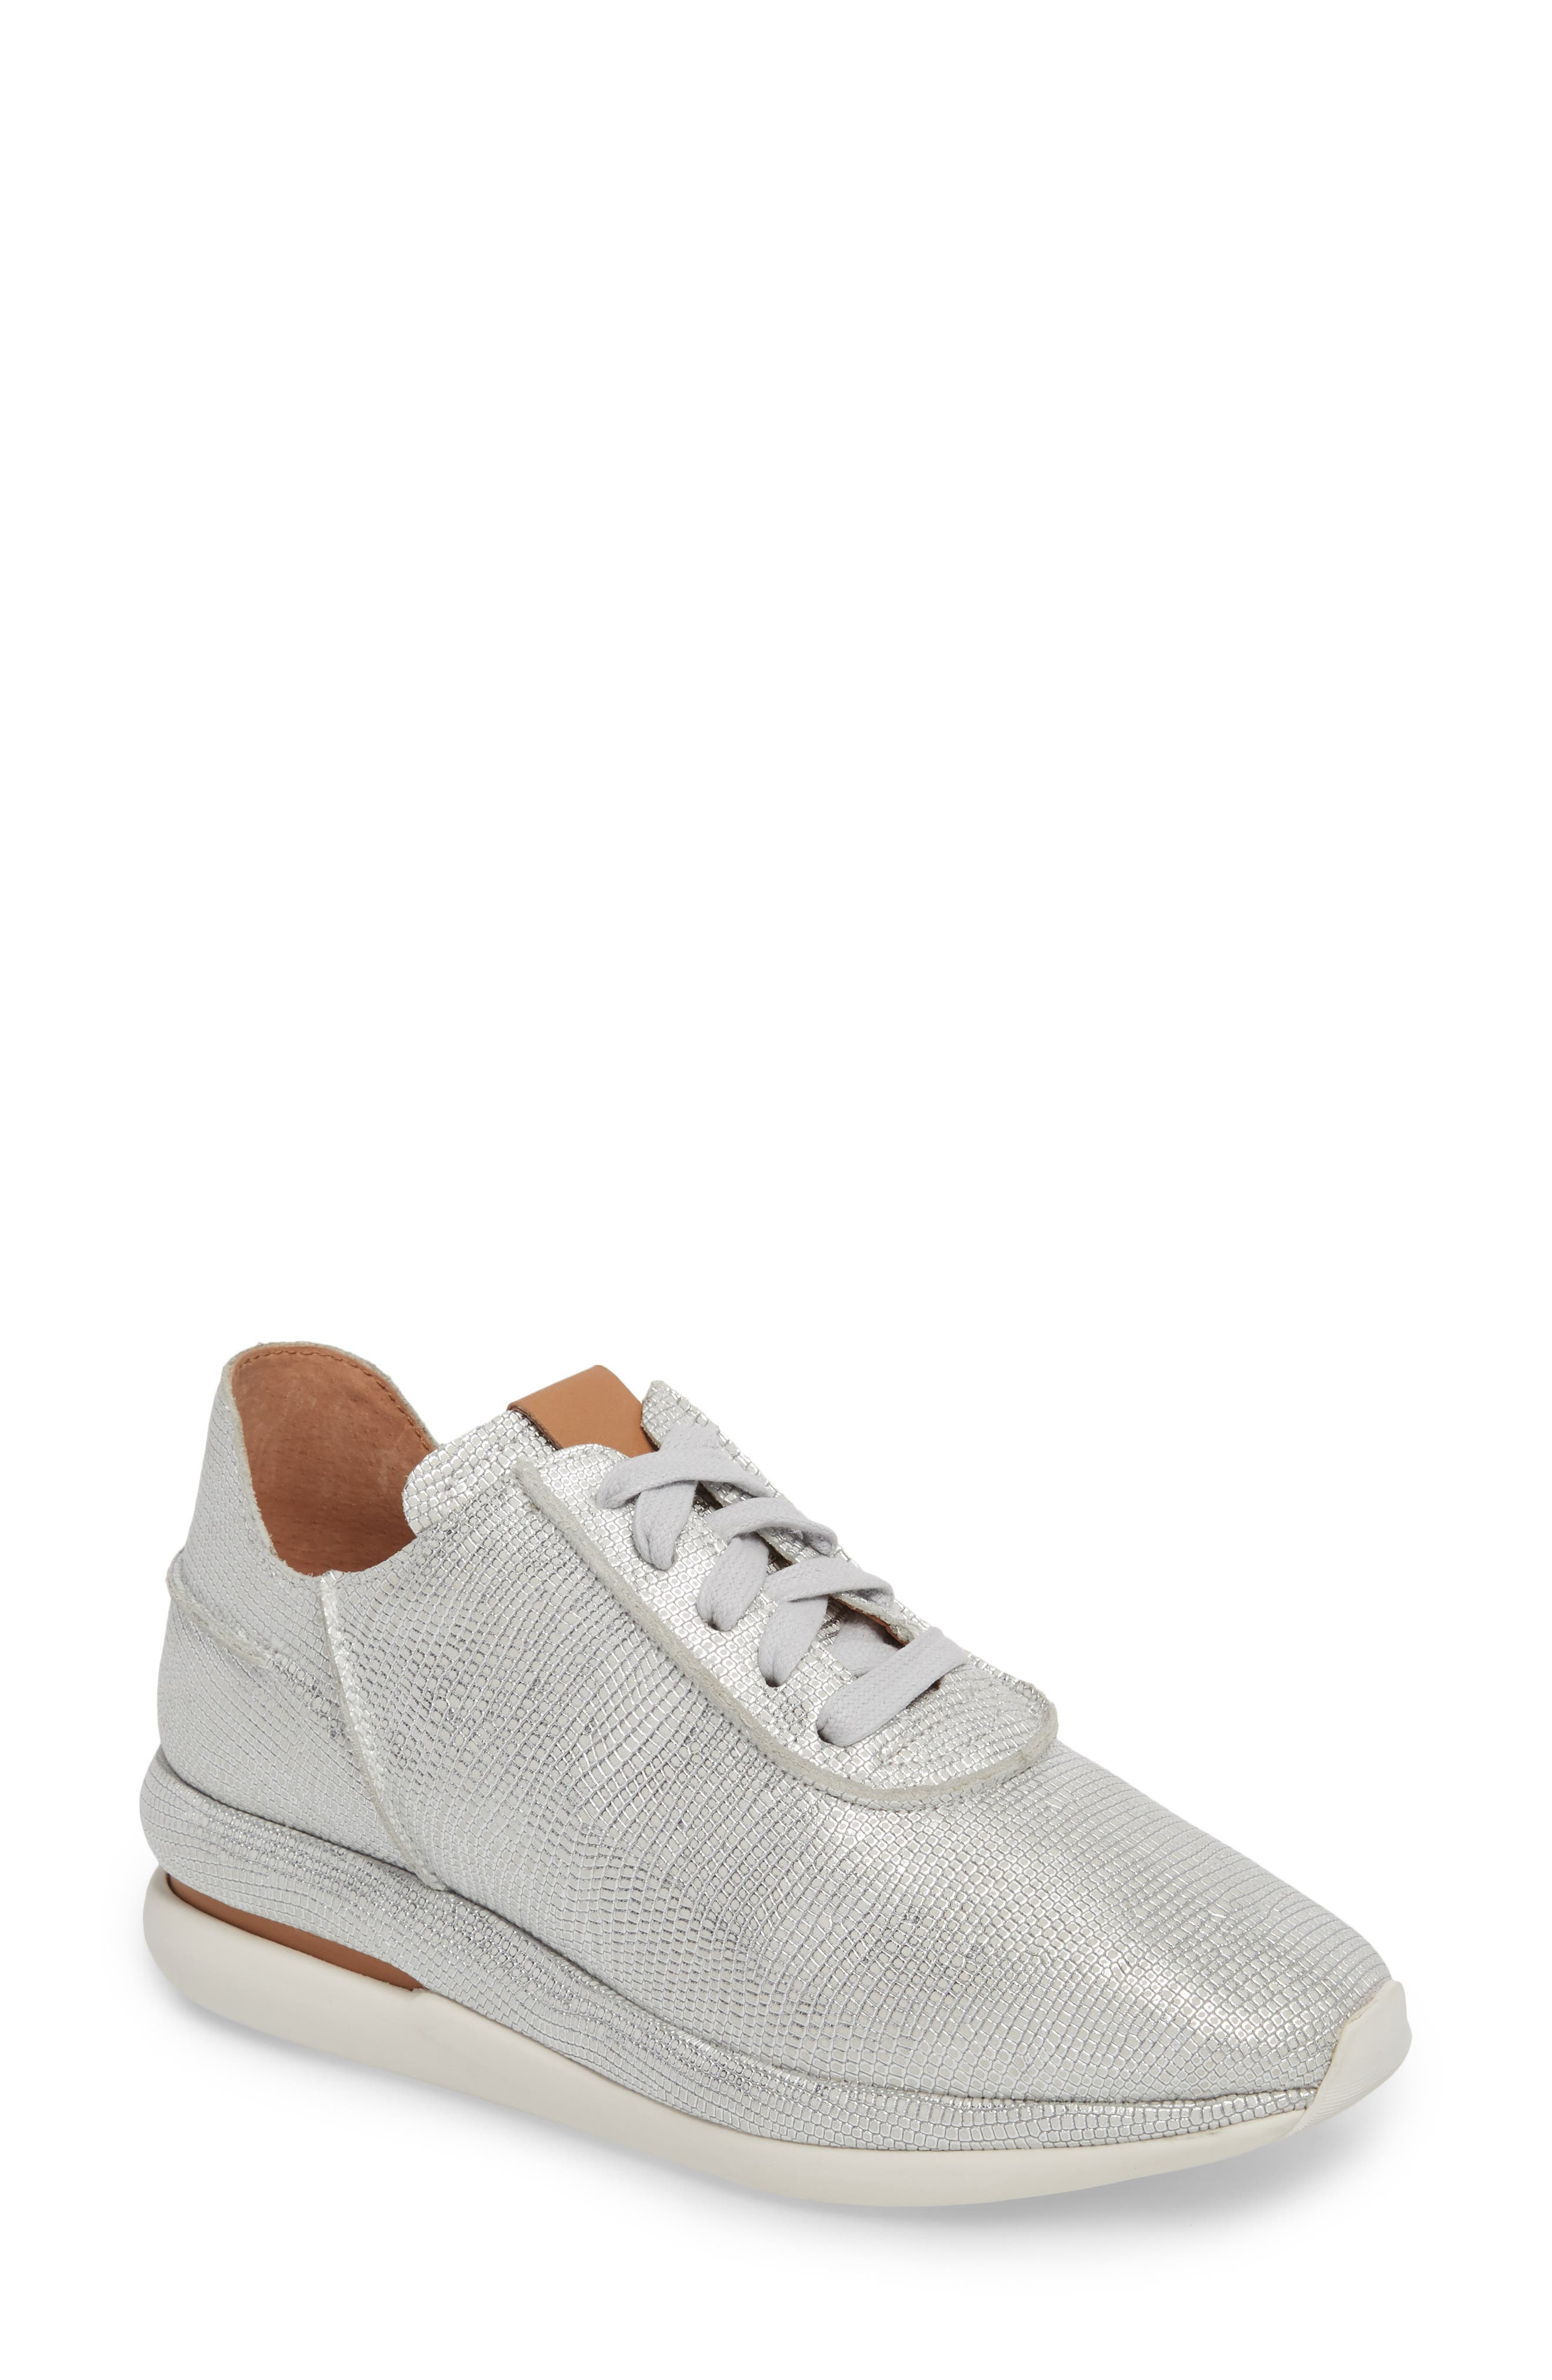 GENTLE SOULS BY KENNETH COLE, Raina Sneaker, Main thumbnail 1, color, WHITE/ SILVER LEATHER